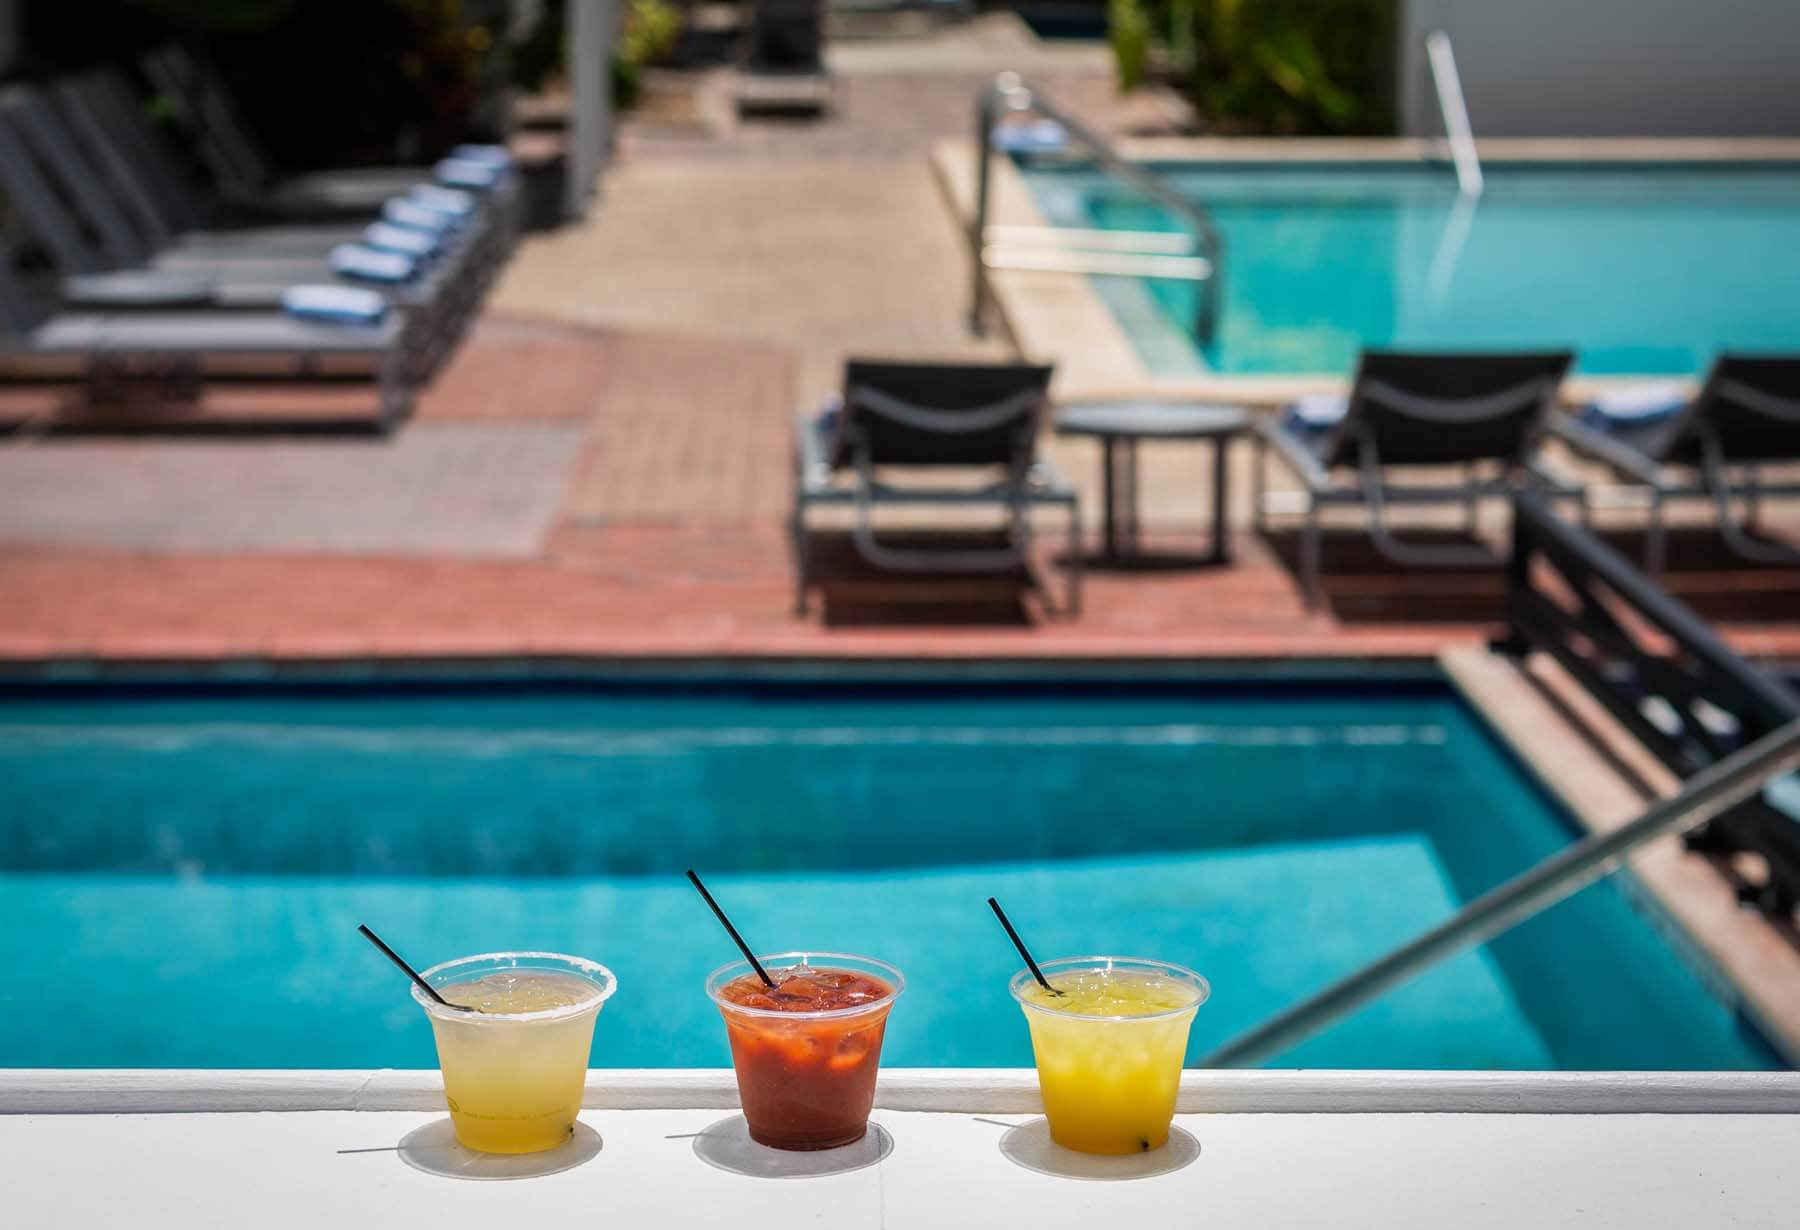 Mixed drinks sitting poolside.